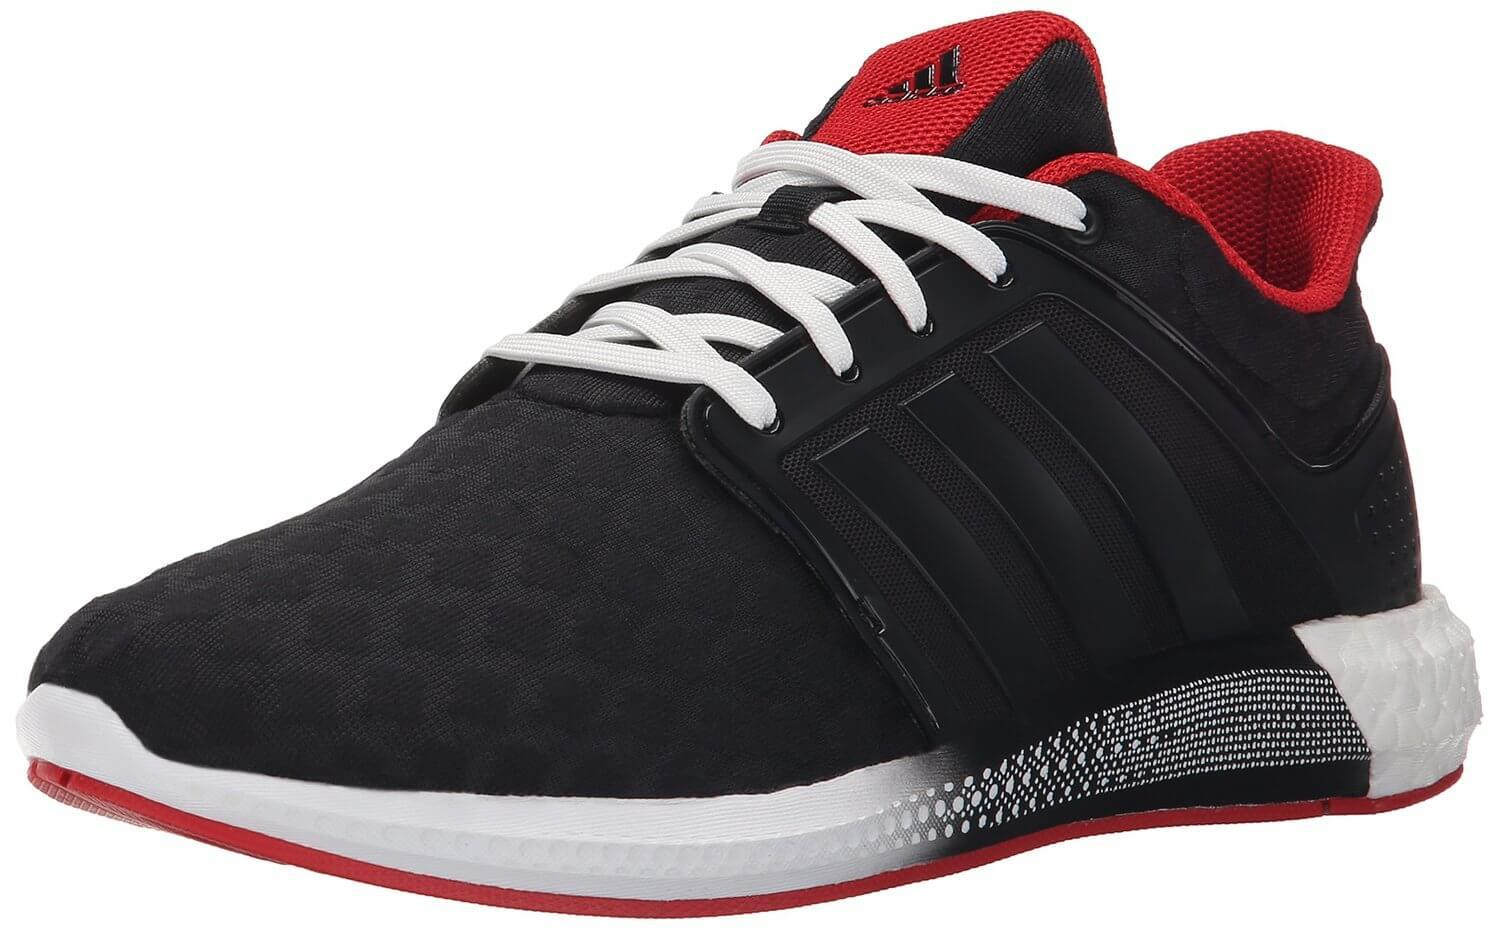 26c3266725a8e Adidas Solar RNR Reviewed - To Buy or Not in May 2019